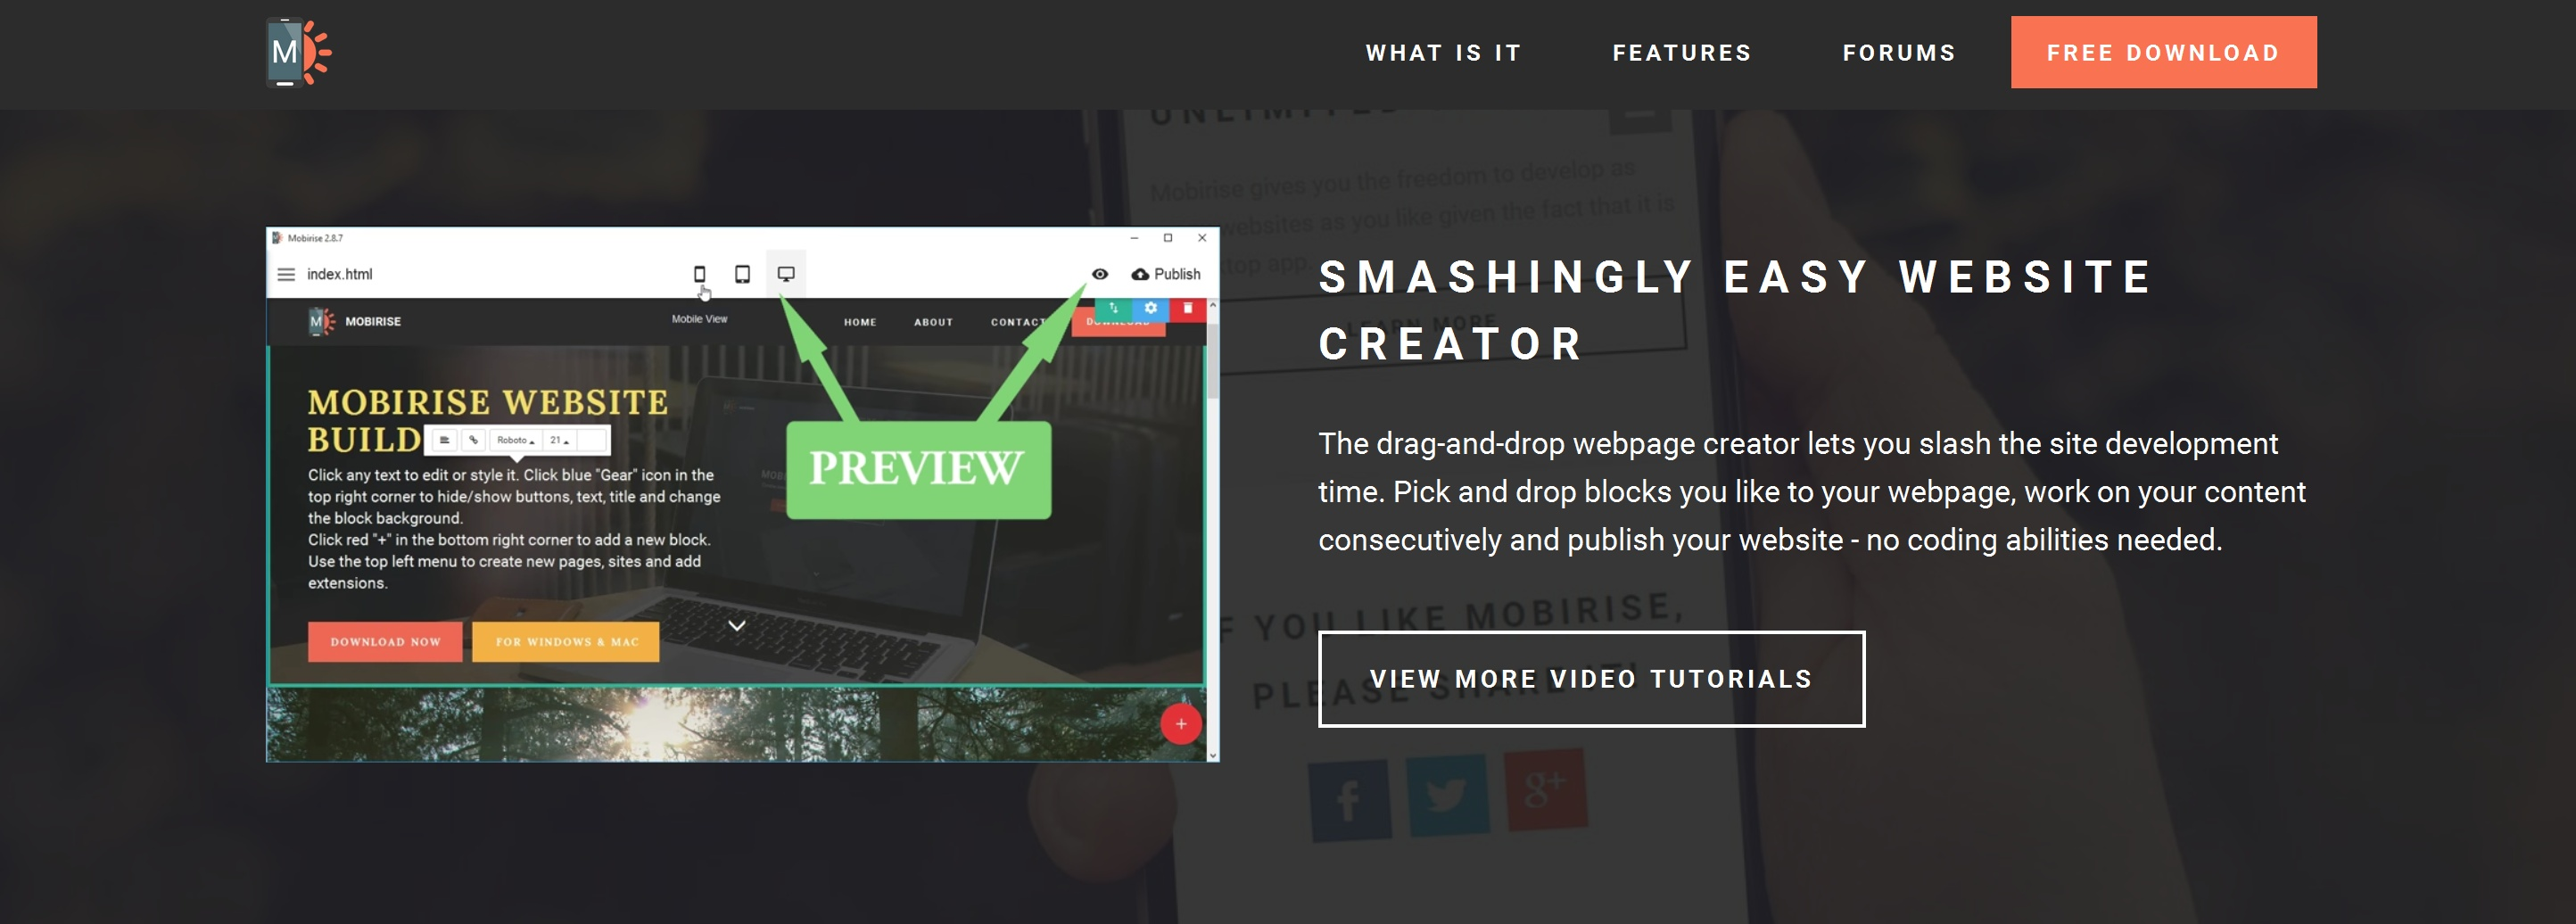 Drag and Drop Easy Website Builder Tool